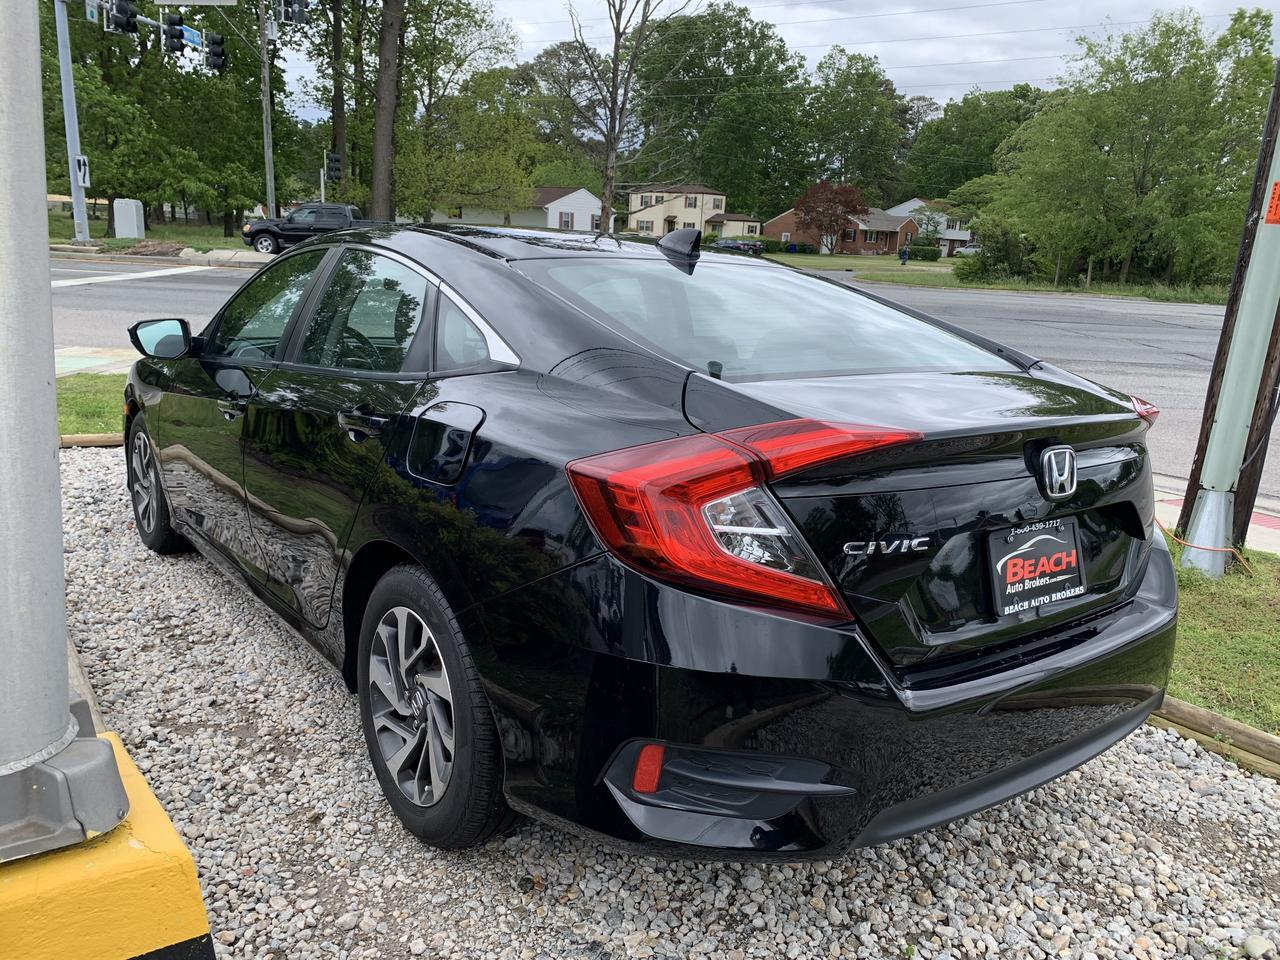 2017 HONDA CIVIC EX, WARRANTY, NAV, BACKUP CAM, PARKING SENSORS, REMOTE START, SUNROOF, 1 OWNER! Norfolk VA